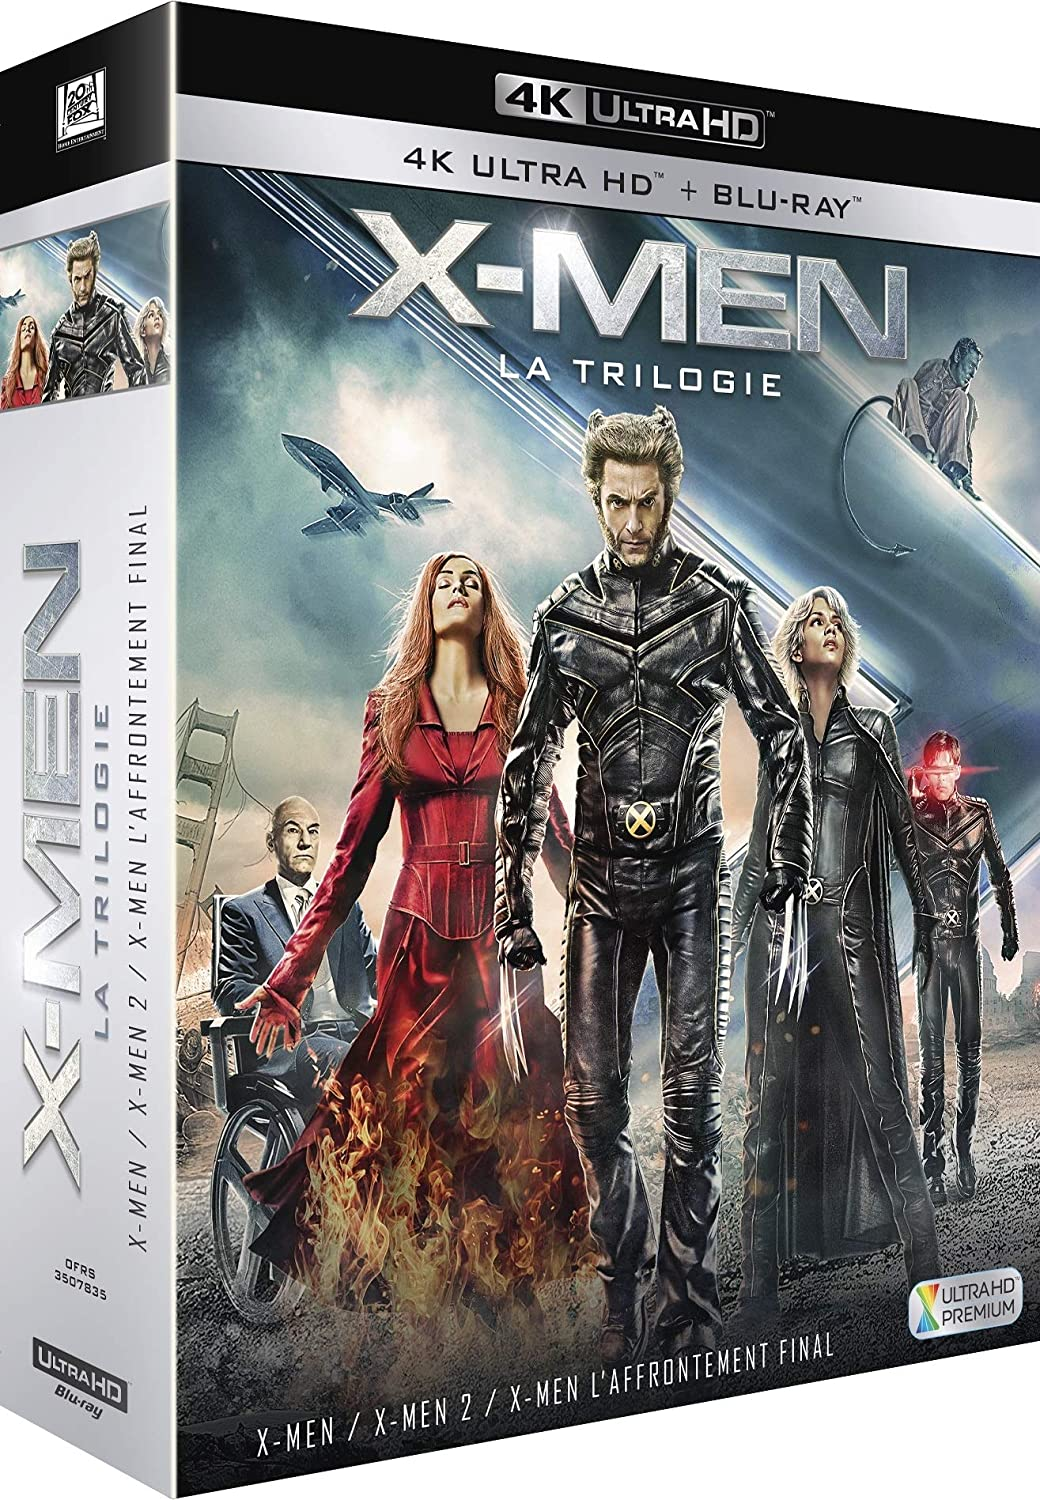 X-Men - La Trilogie : X-Men + X-Men 2 + X-Men : Laffrontement final Francia Blu-ray: Amazon.es: Patrick Stewart, Hugh Jackman, Ian McKellen, Halle Berry, Famke Janssen, James Marsden, Rebecca Romijn, Anna